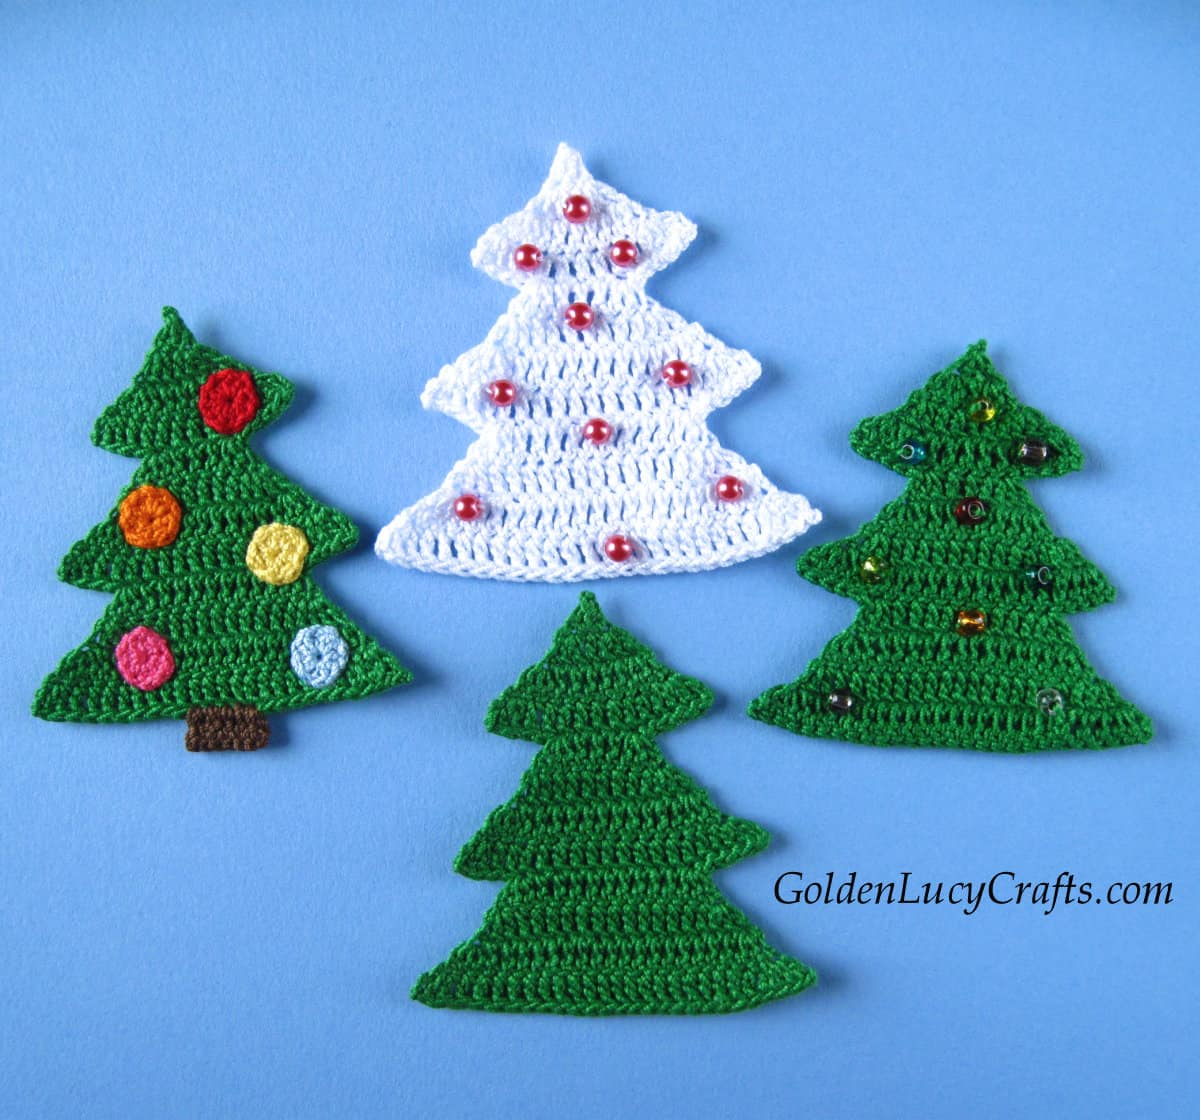 Three green and one white crocheted Christmas tree appliques.